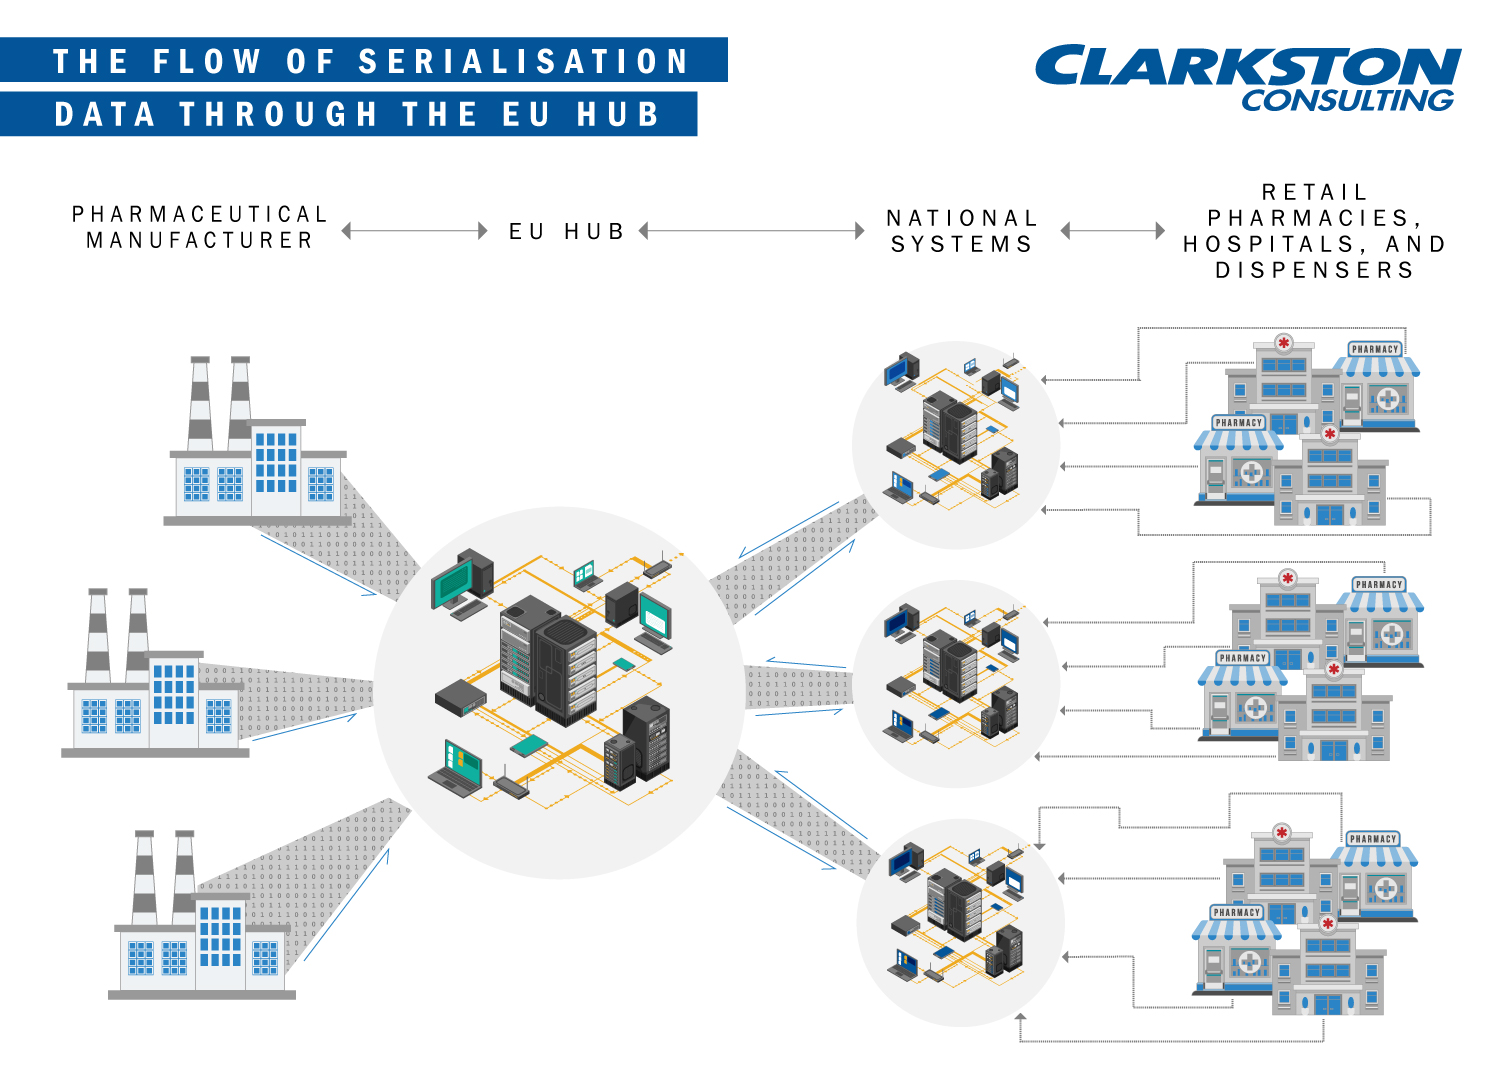 Image depicting the flow of serialisation data through the EU Hub